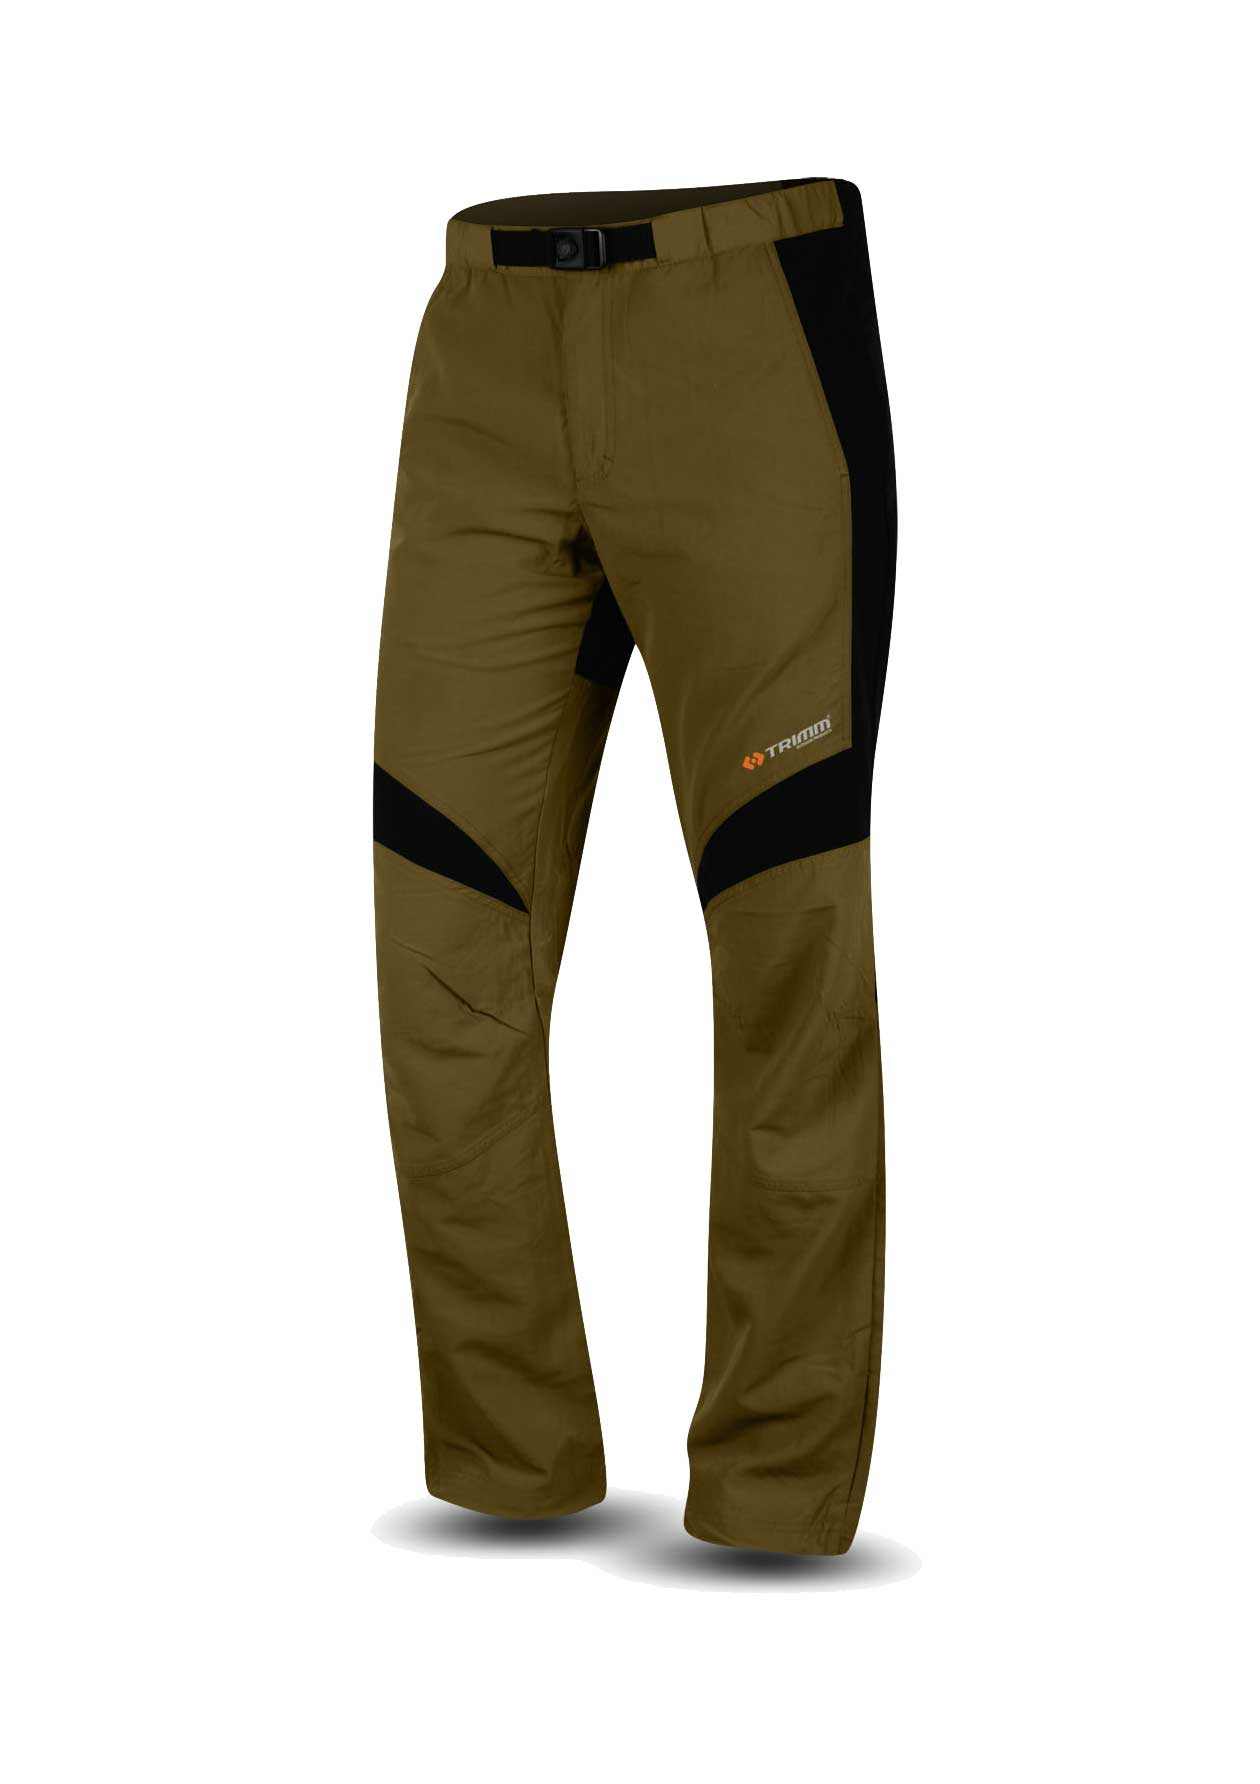 Trekking Accessories,Trousers,Direct